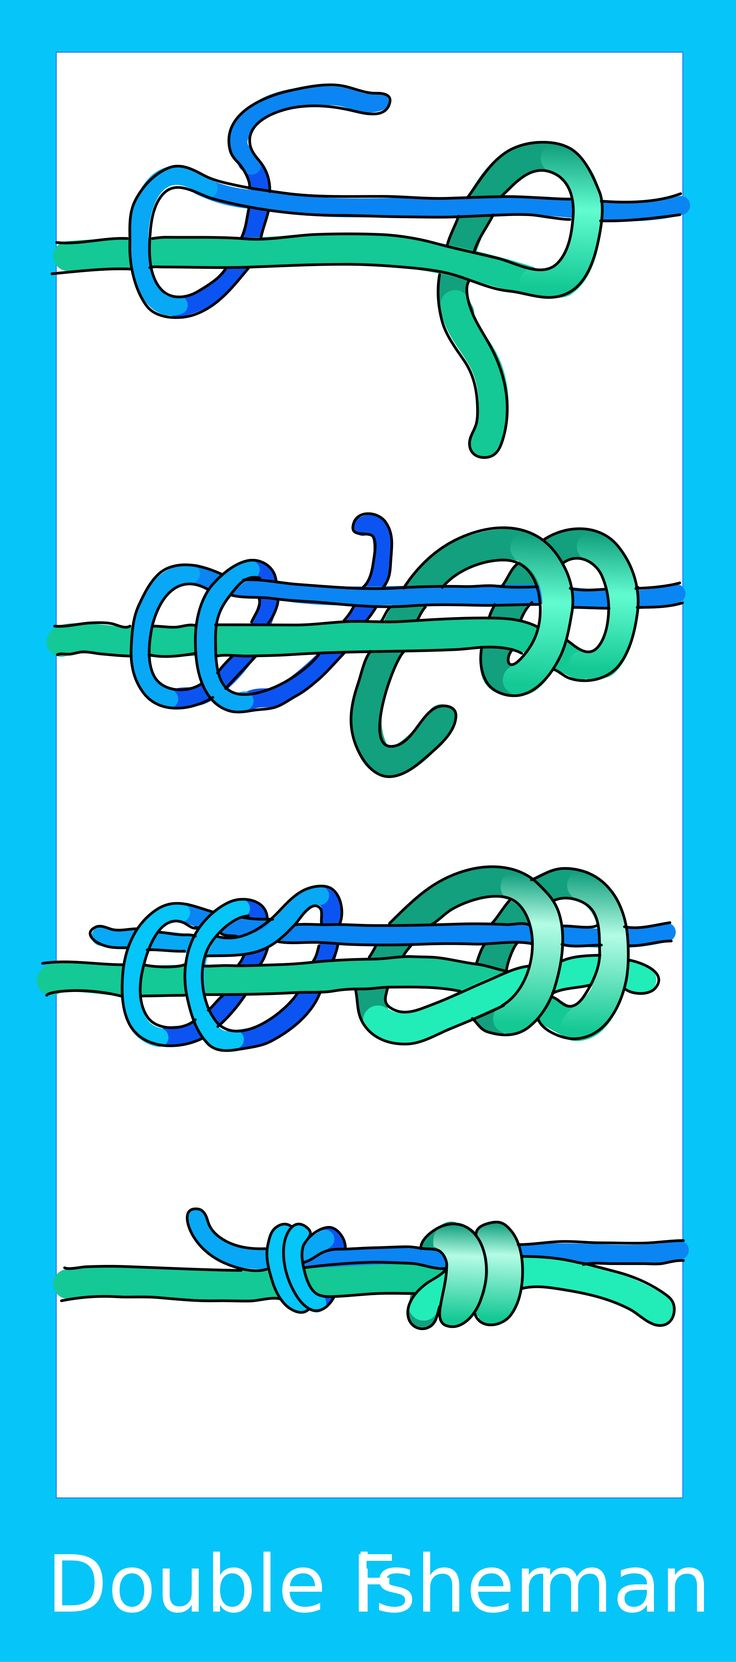 double fisherman's knot - Google Search